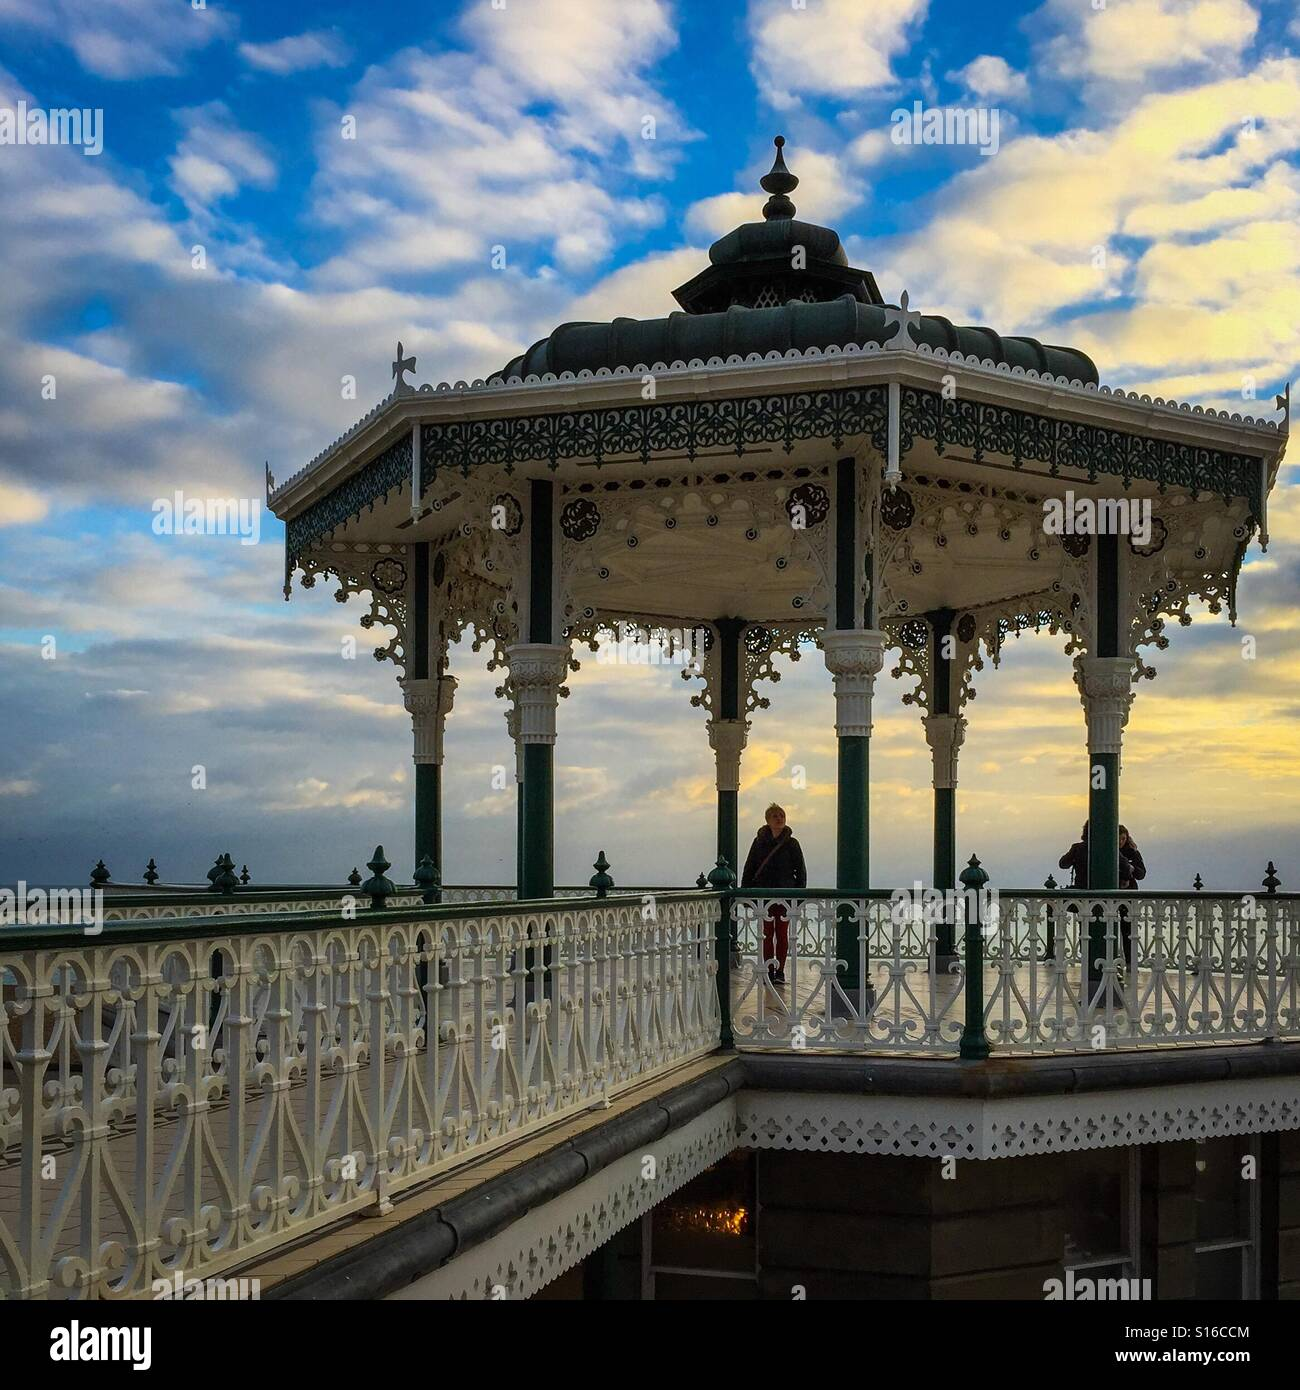 Old bandstand overlooking Brighton beach during sunset - Stock Image